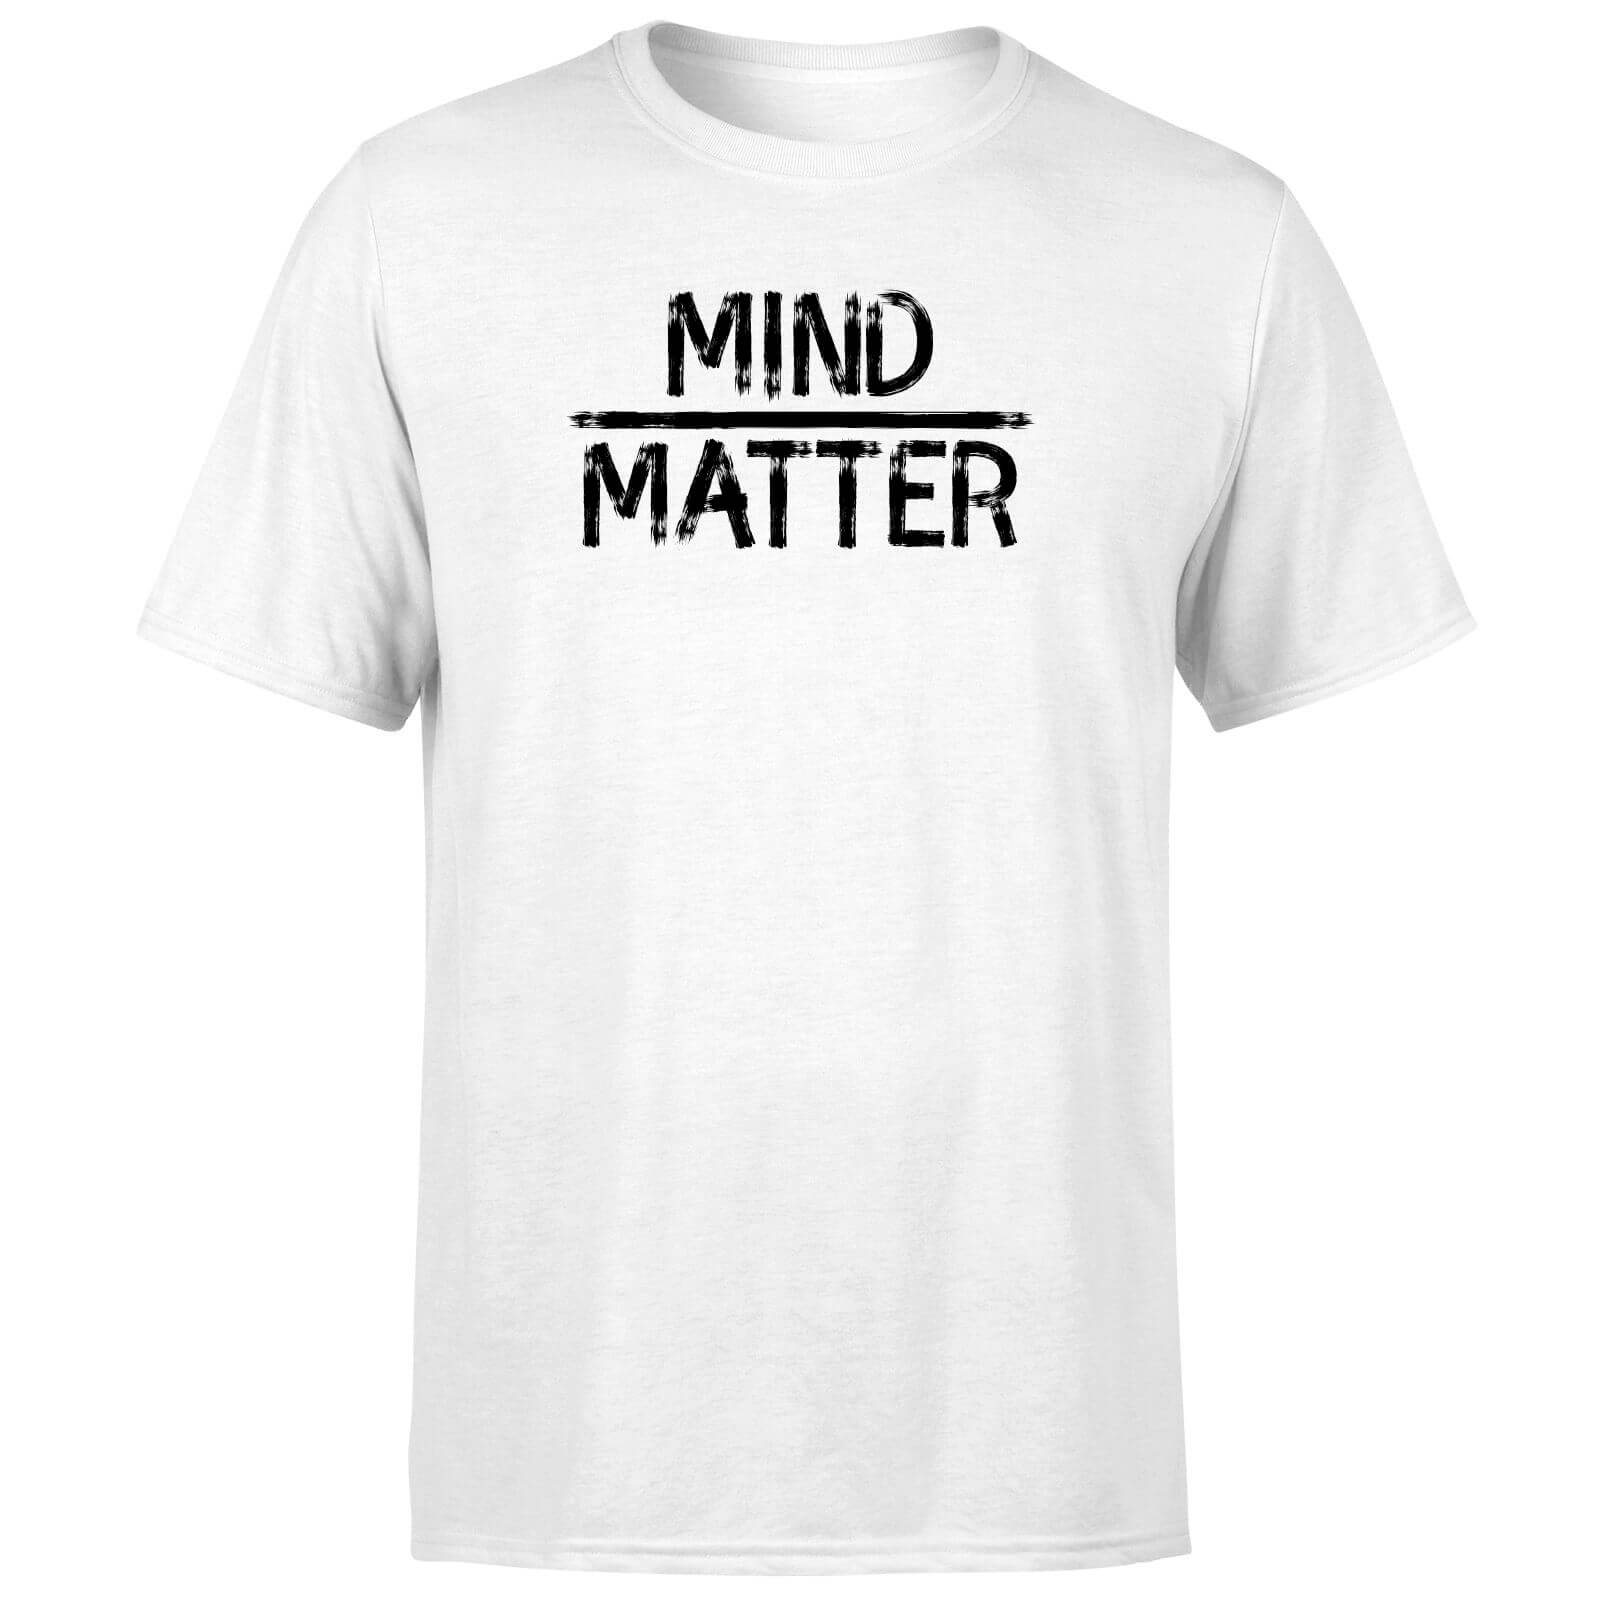 Mind Over Matter T-Shirt - White